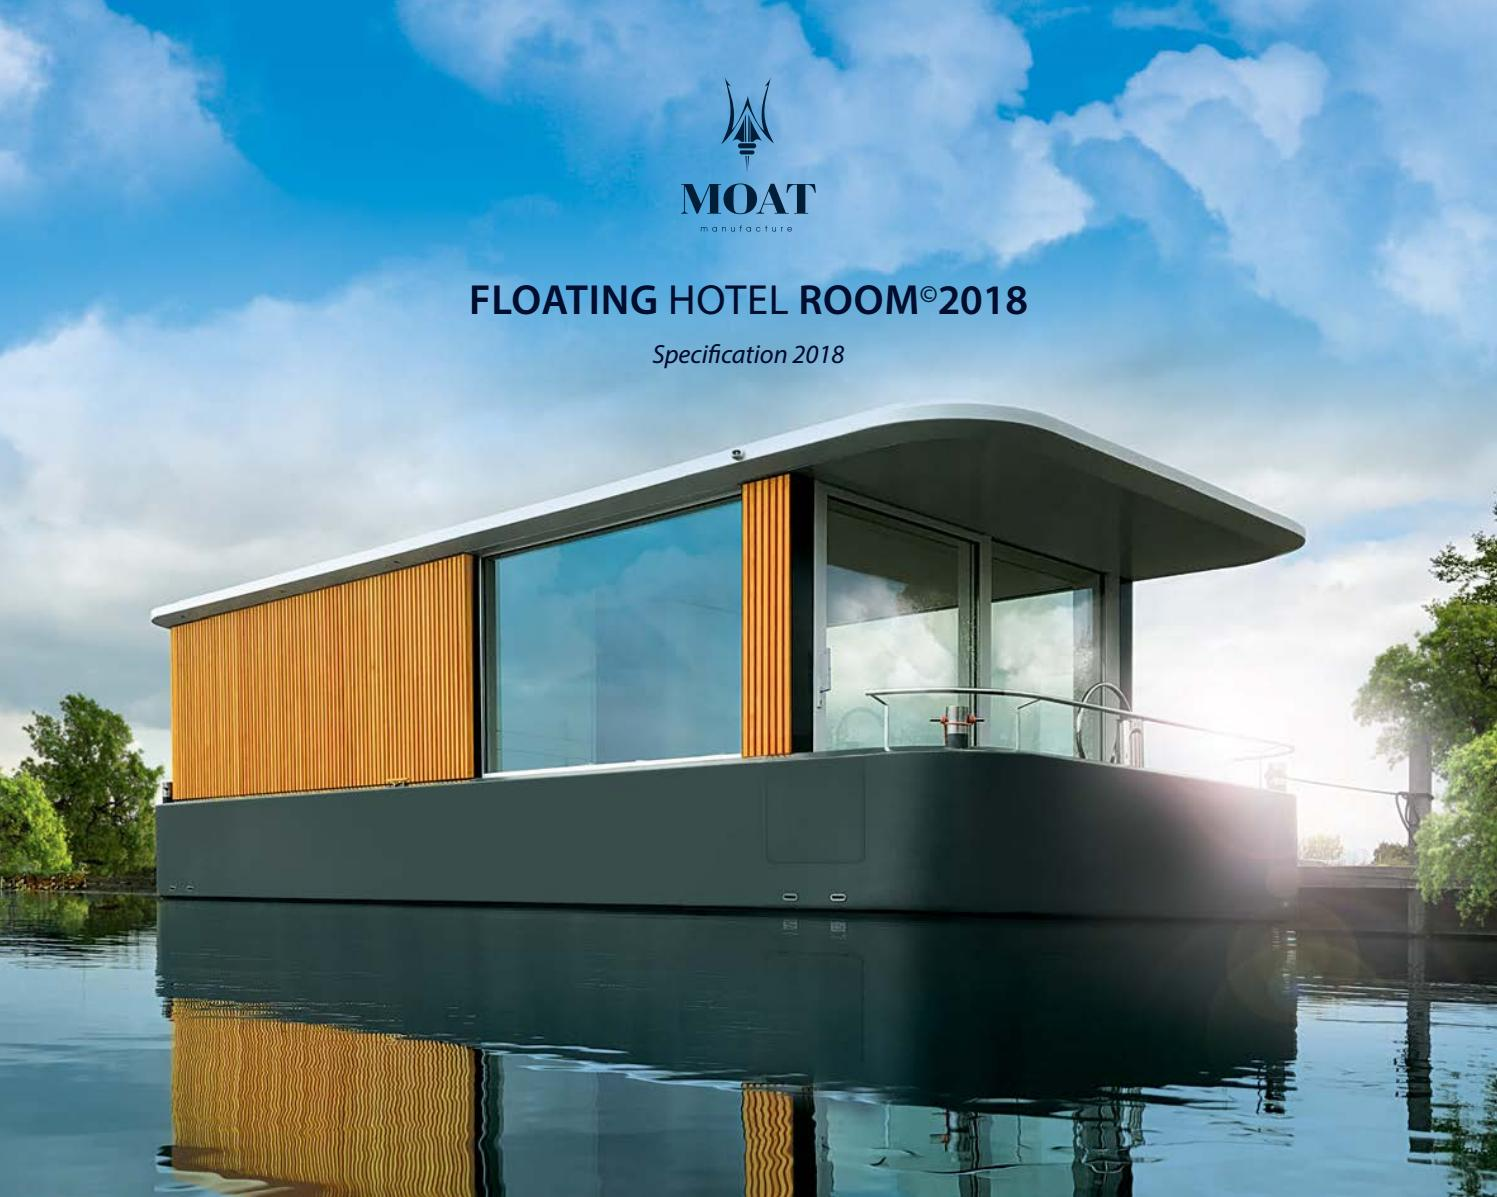 Floating Hotel Room 2018 Specification By Moat Manufacturecom Issuu Fuse Box